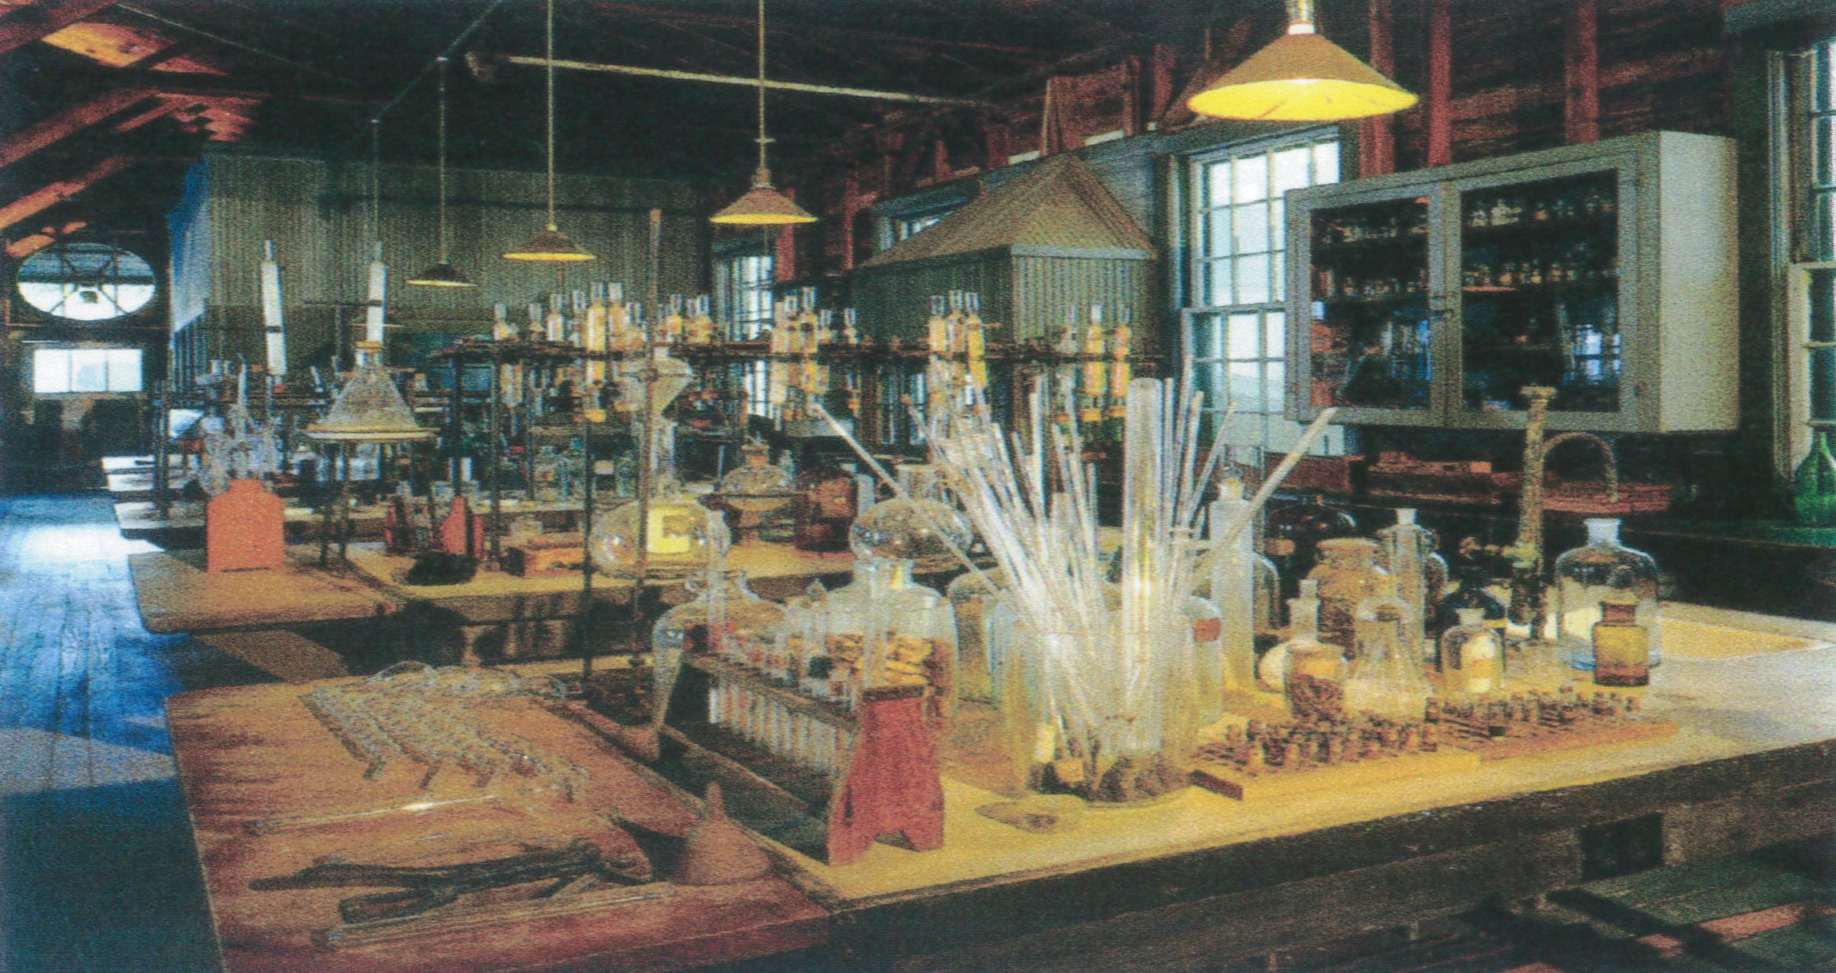 The interior of Thomas Edison's laboratory at his winter estate in Fort Myers, Florida